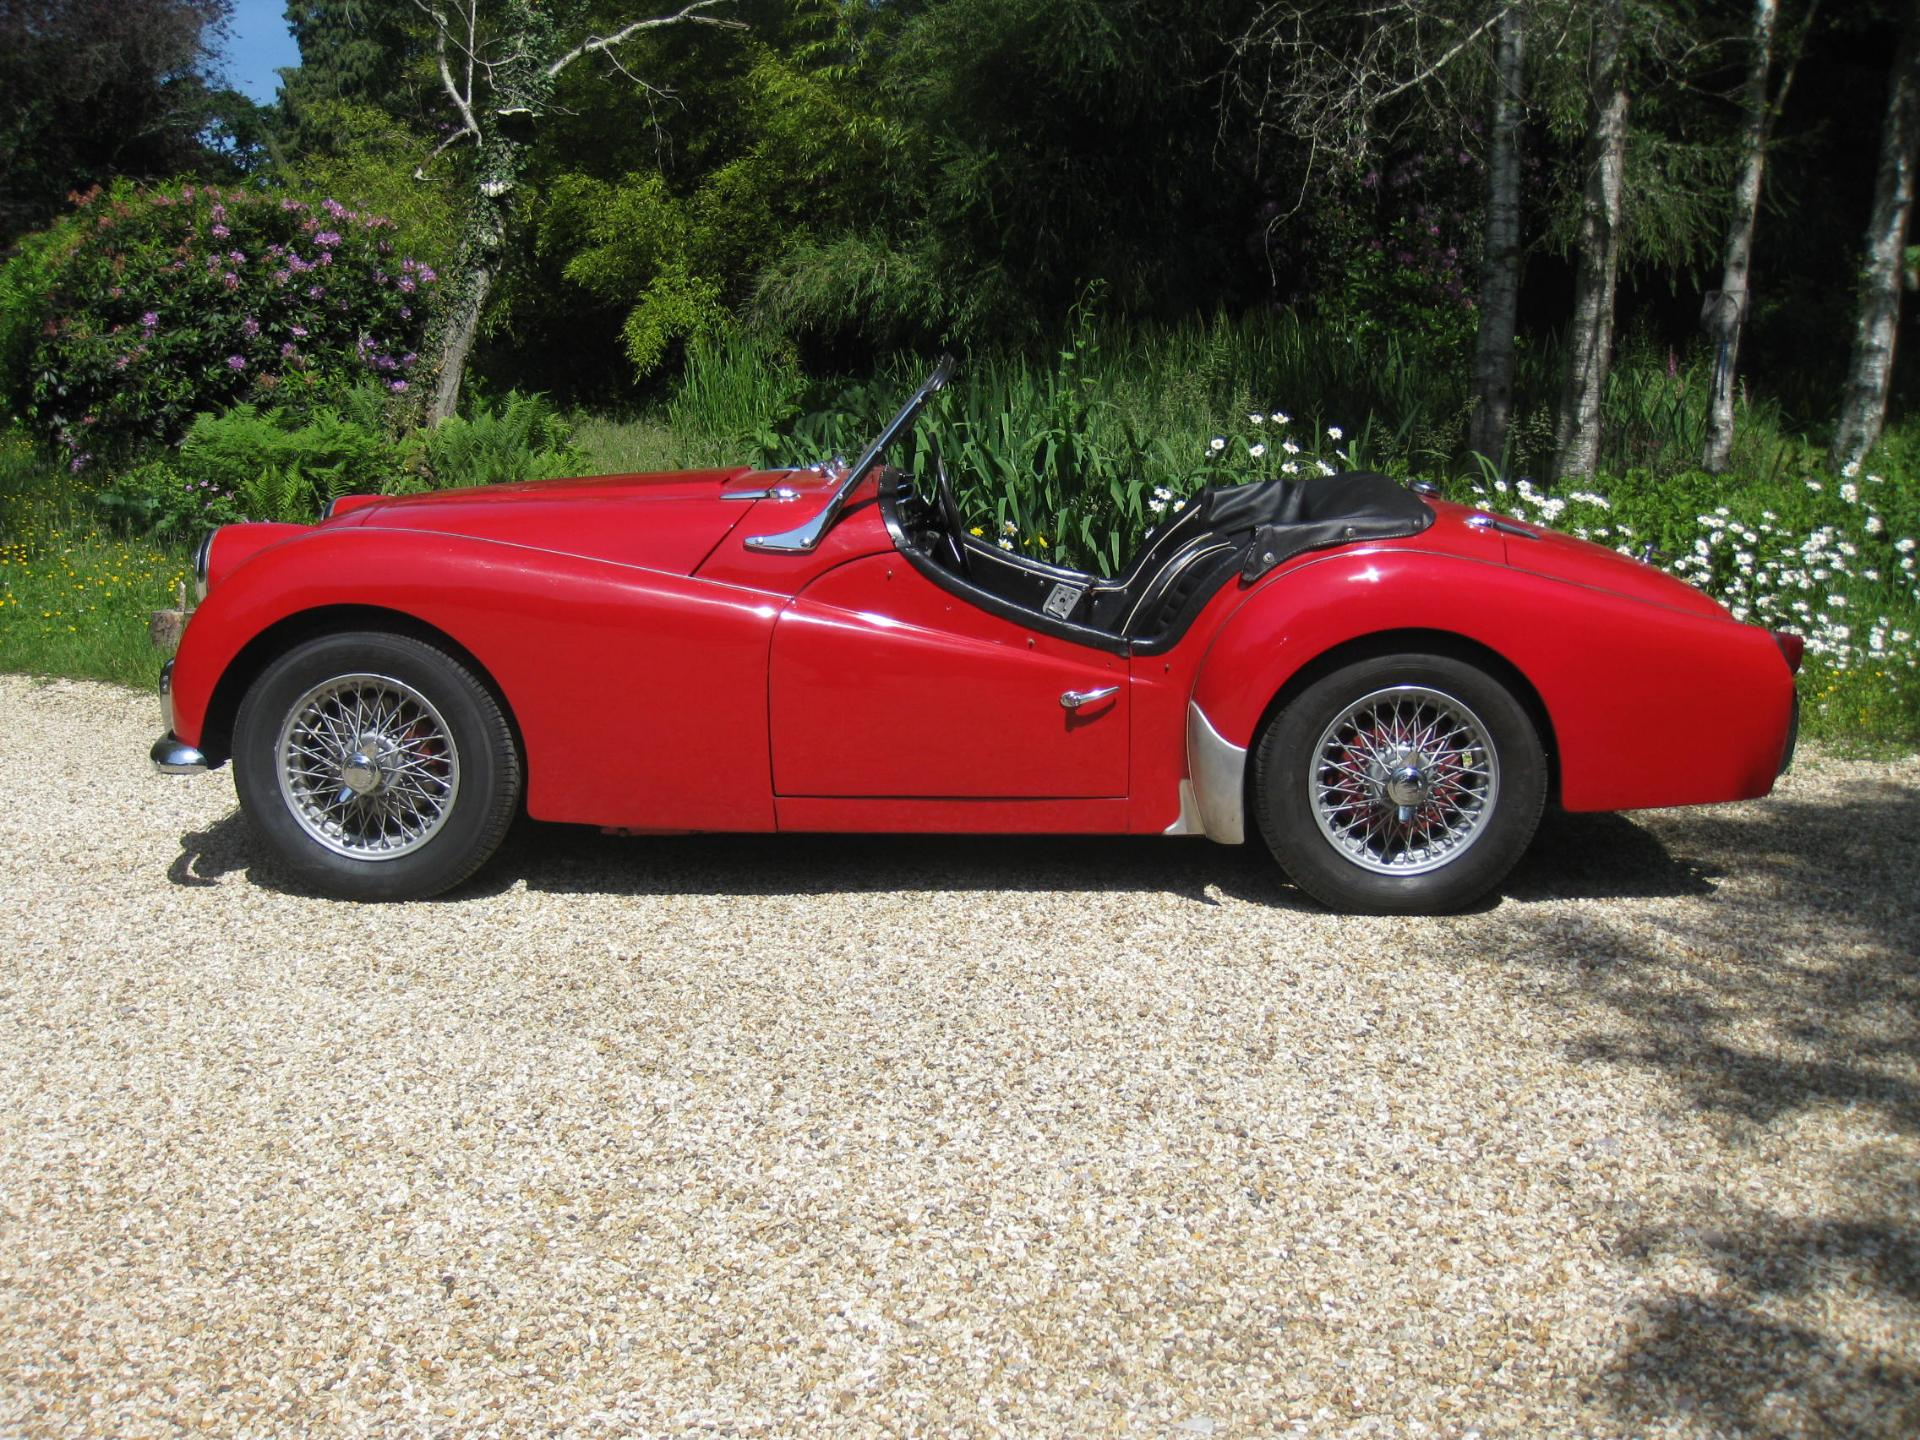 Triumph TR3A Convertible For Sale In Landford, Wiltshire